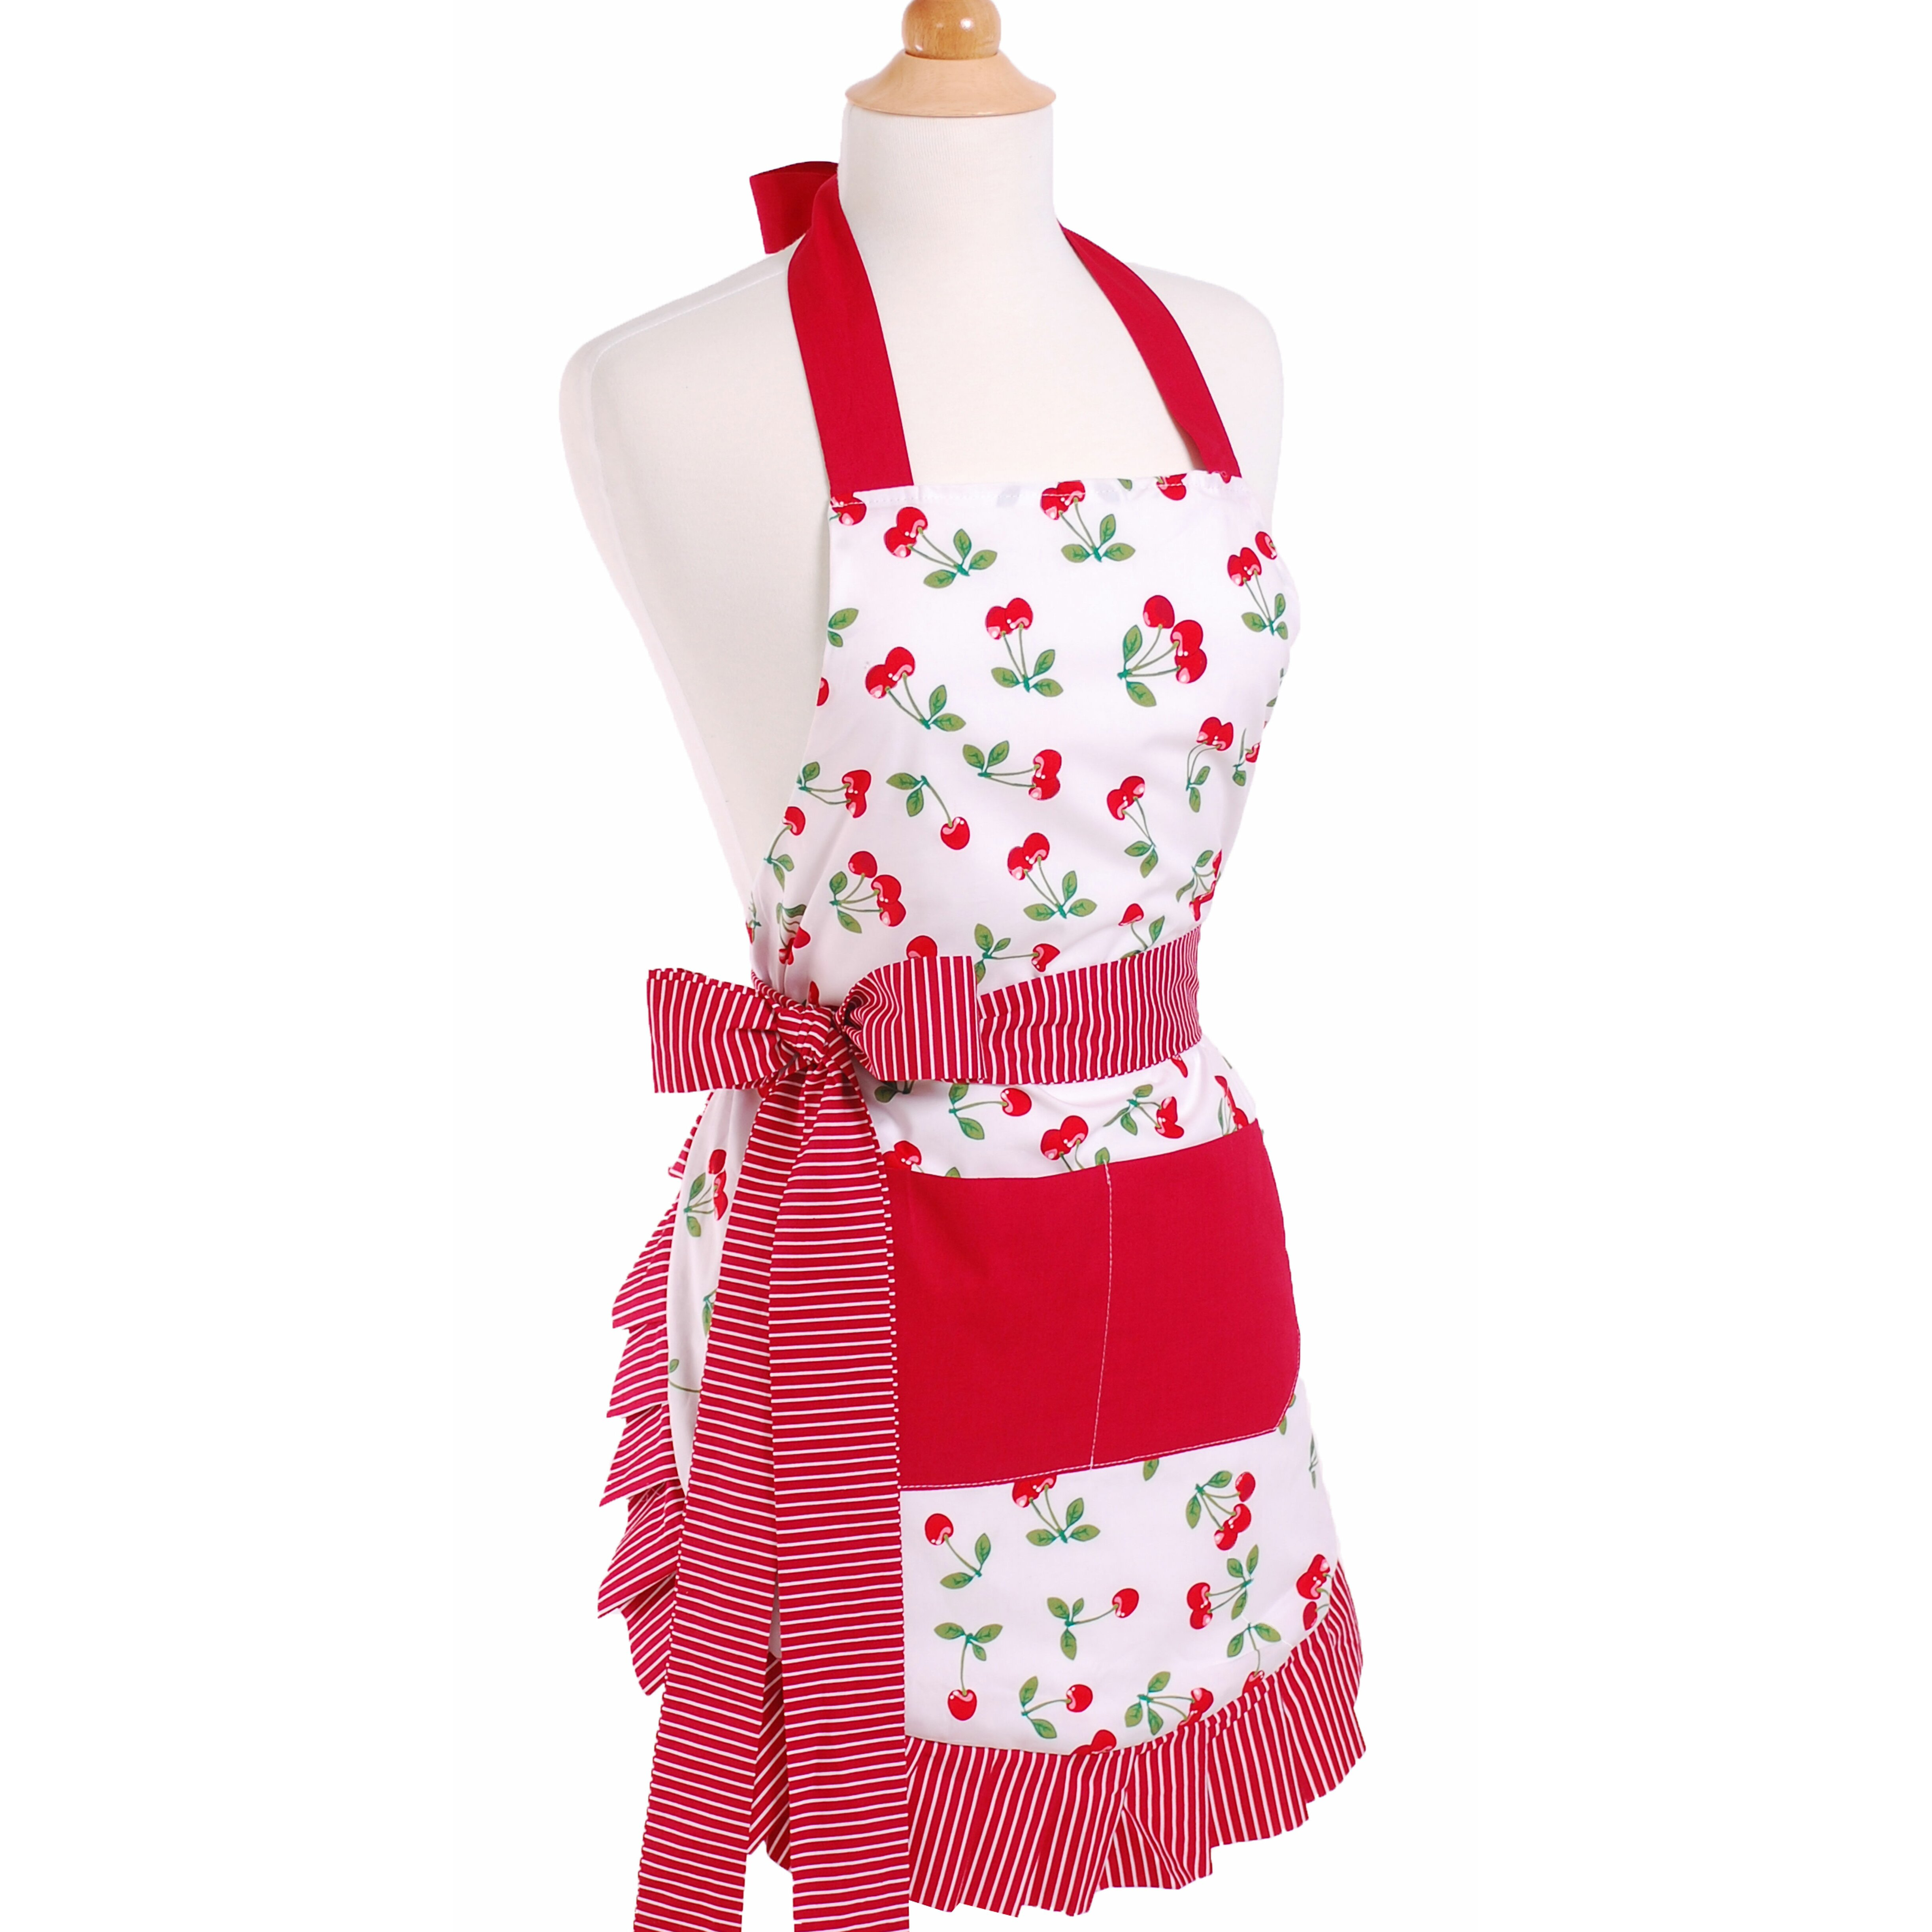 Flirty Aprons Women S Apron In Very Cherry Amp Reviews Wayfair